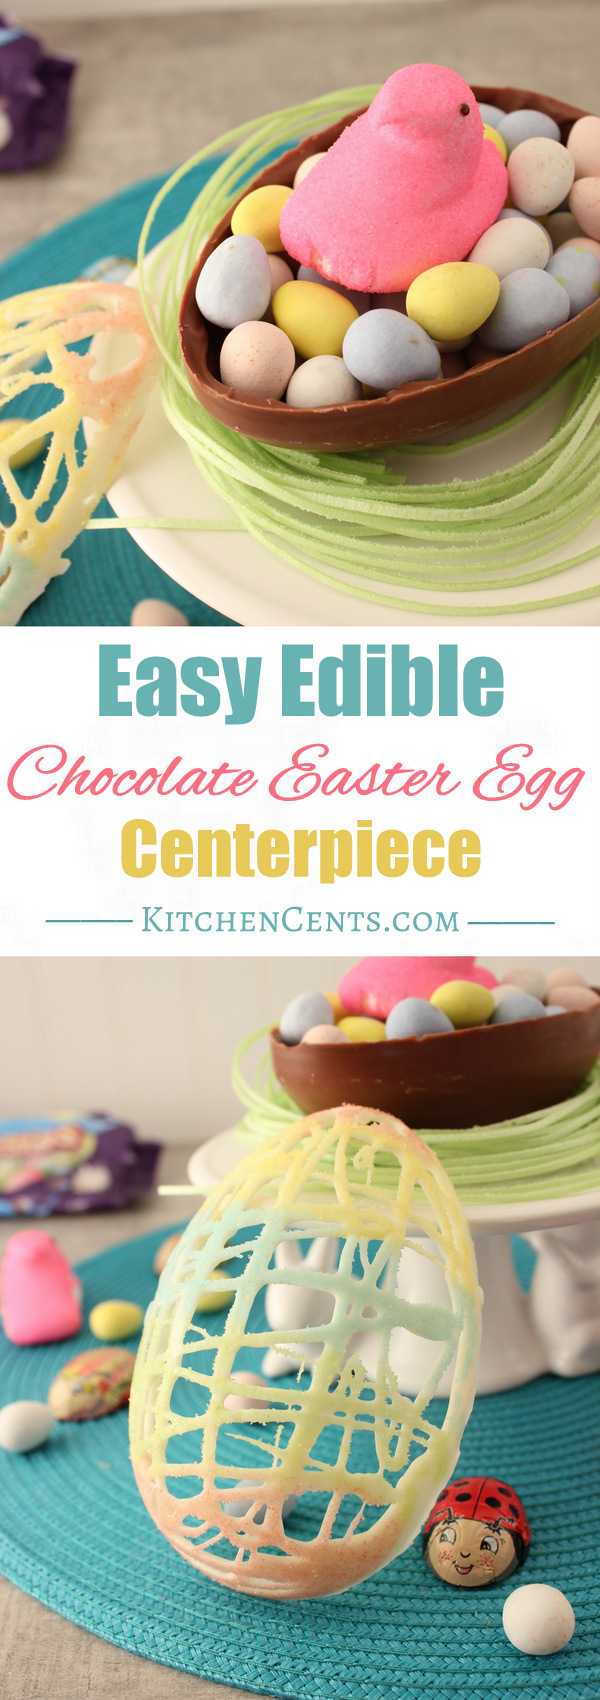 Easy Edible Chocolate Easter Egg Centerpiece | KitchenCents.com